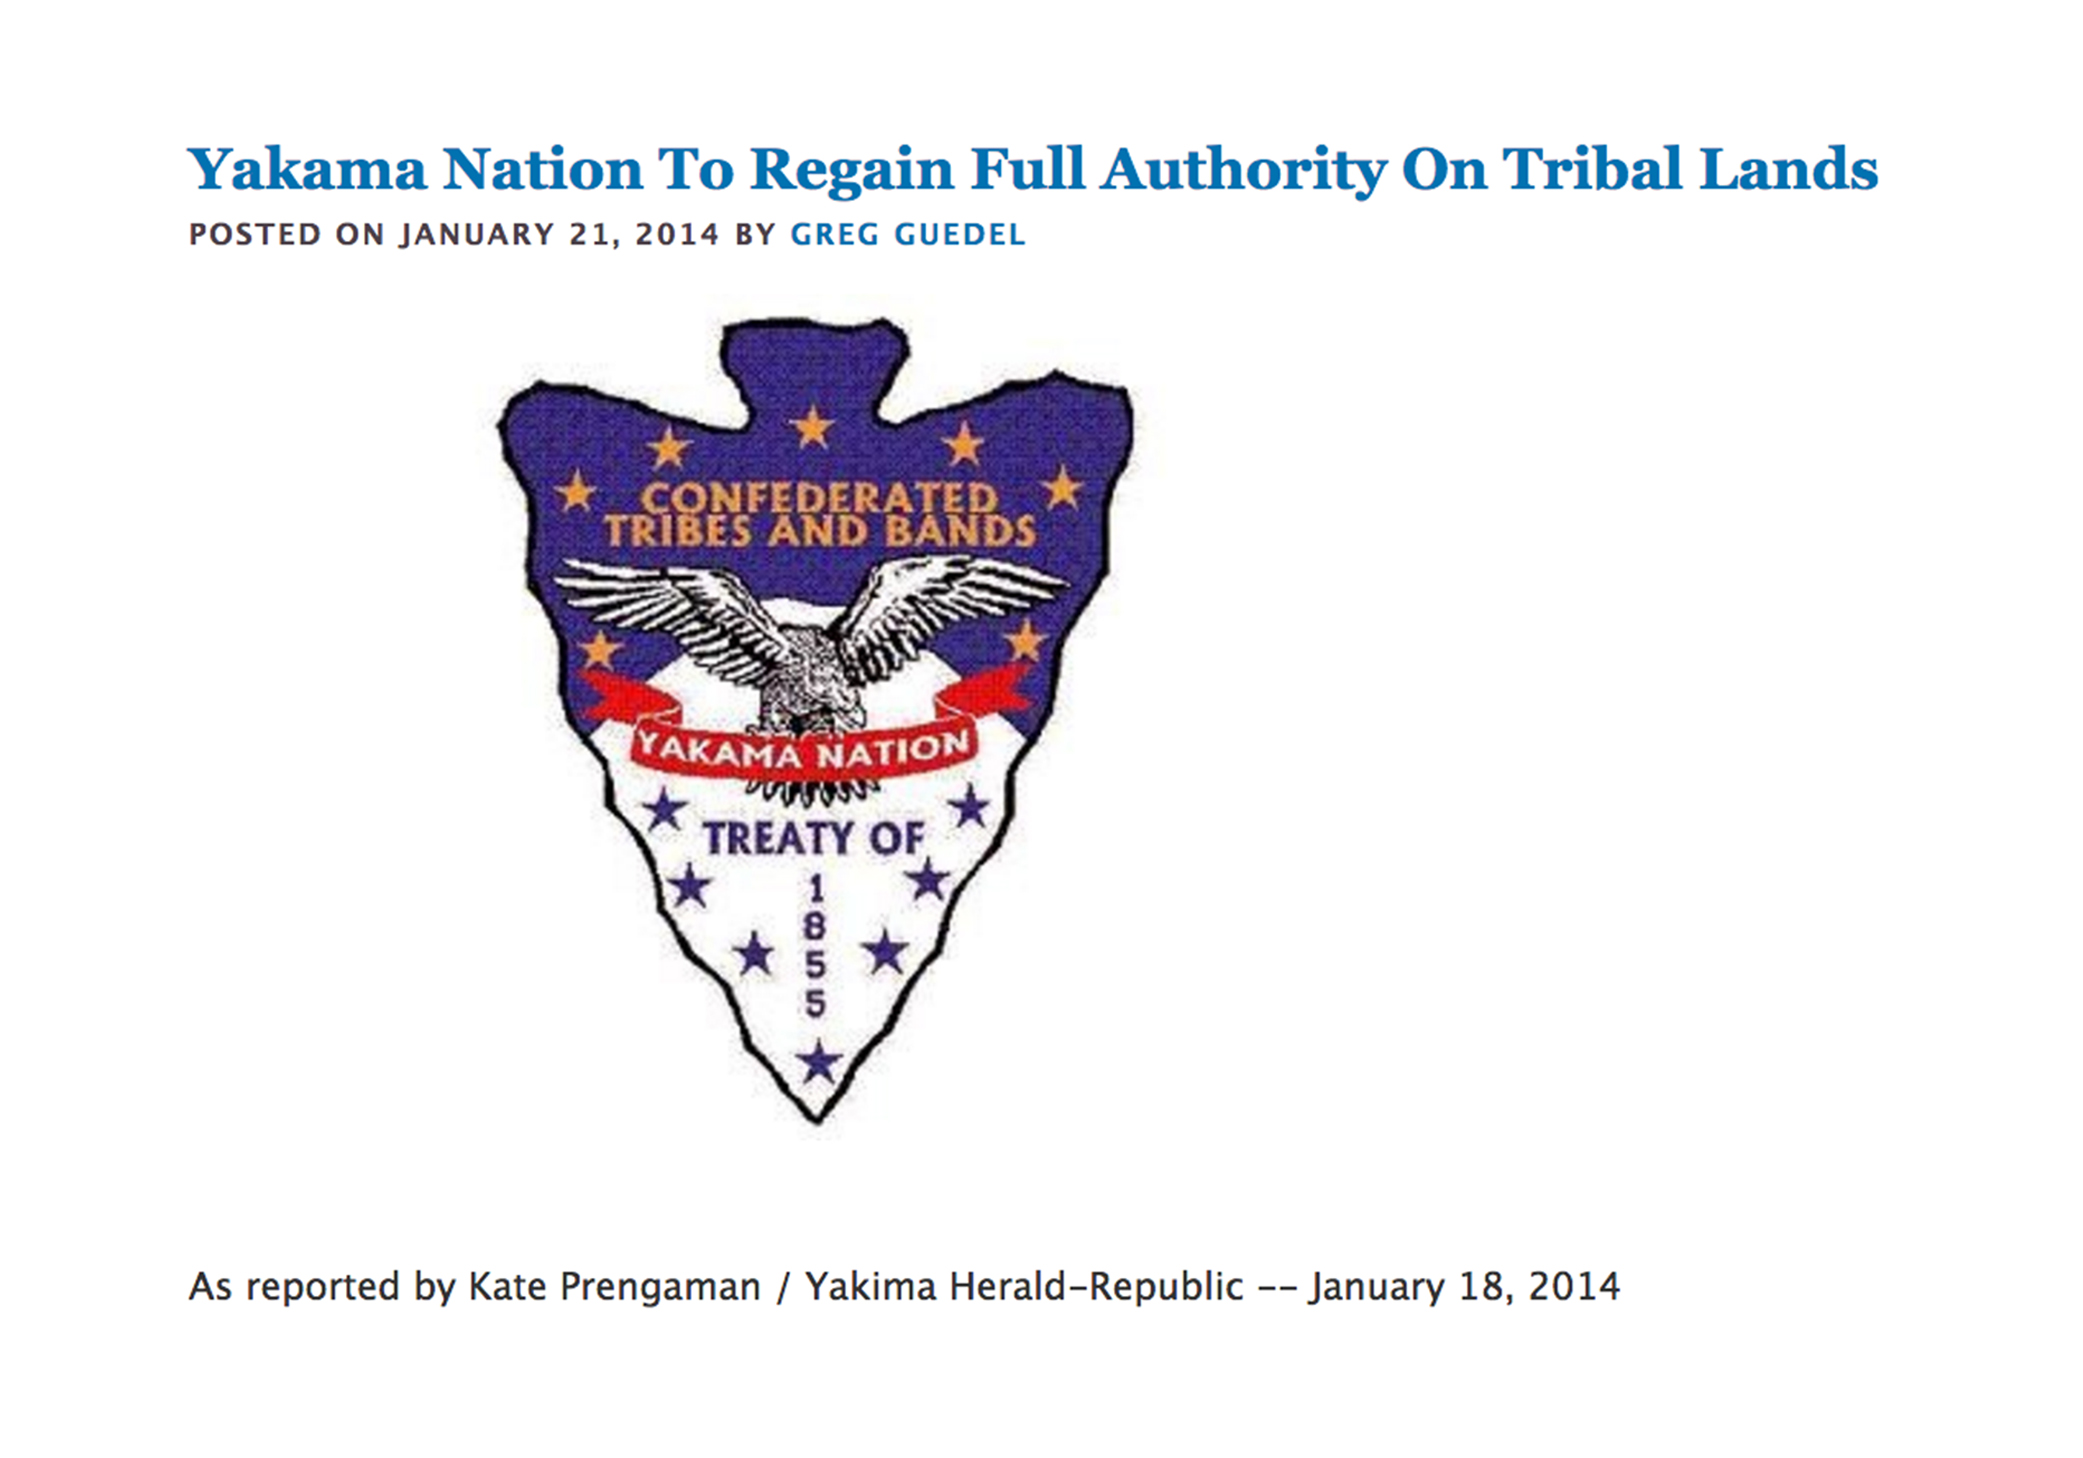 Yakama Nation To Regain Full Authority On Tribal Lands